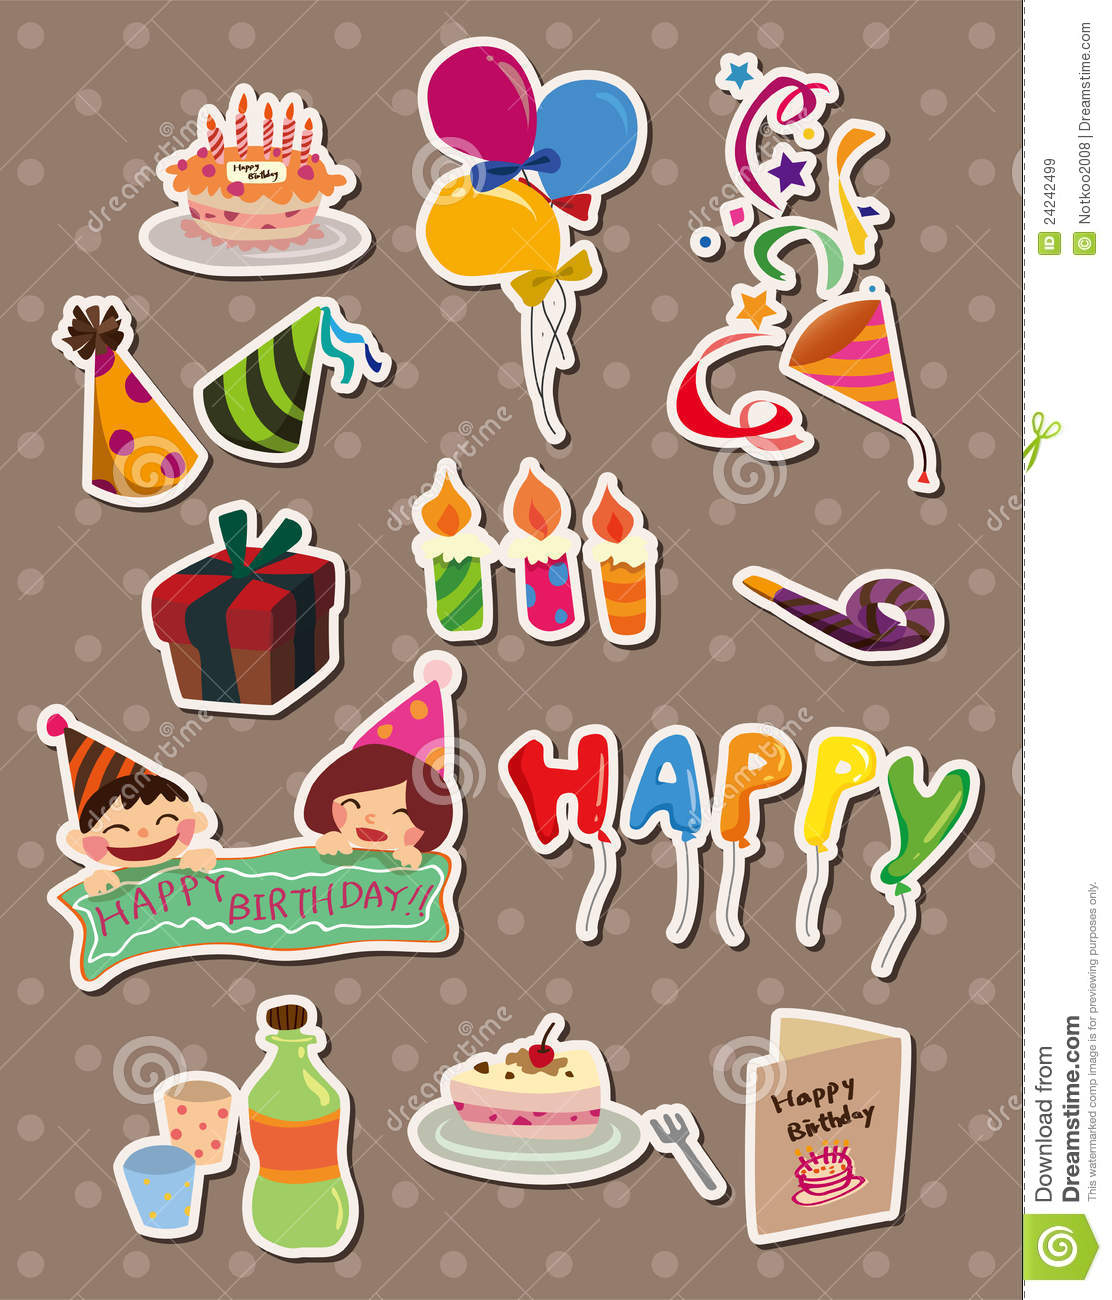 free birthday stickers ; cartoon-birthday-stickers-24242499